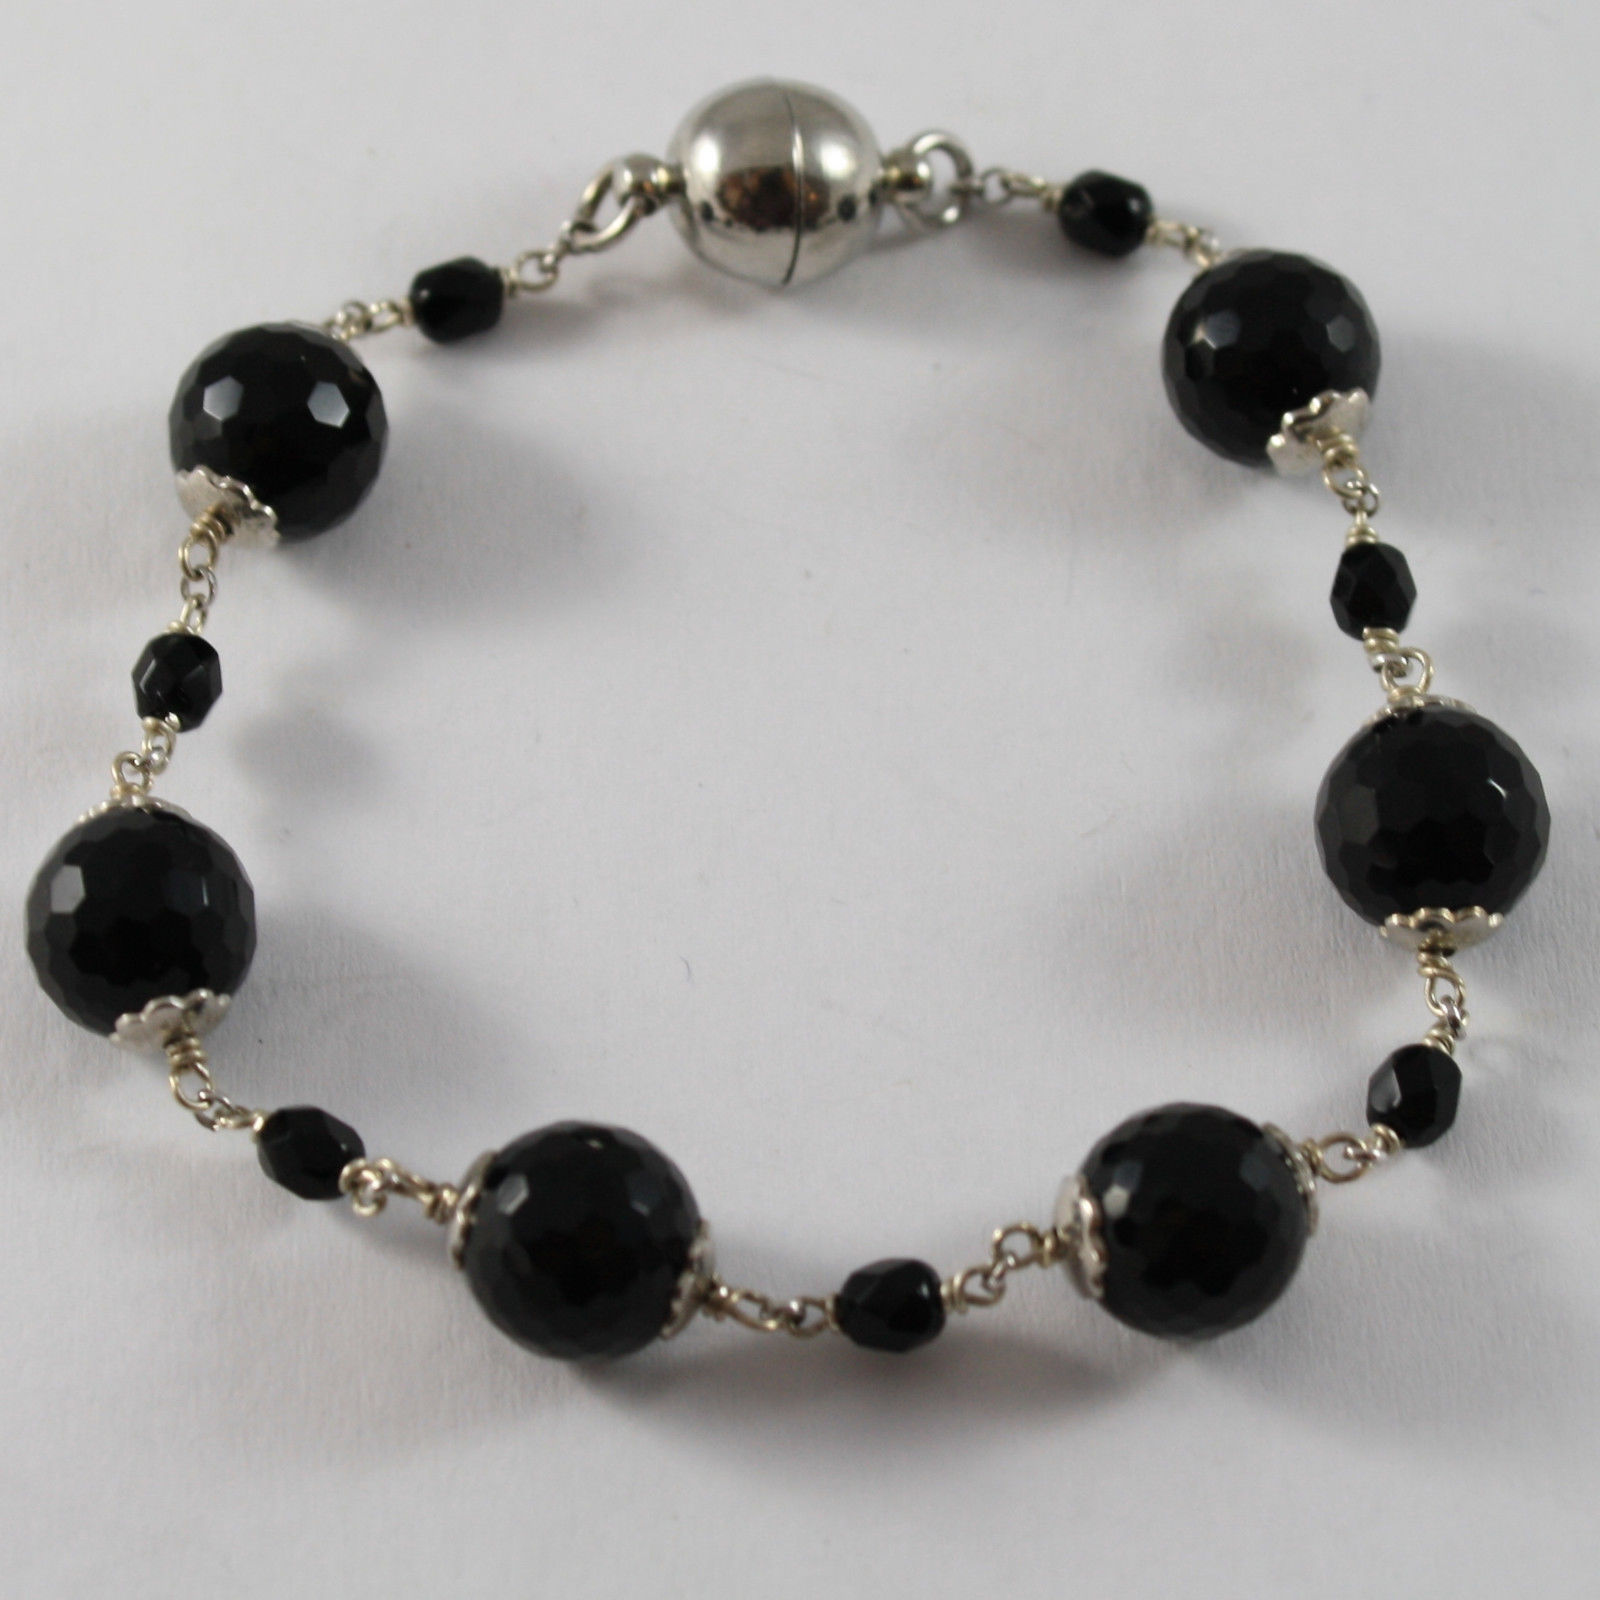 .925 RHODIUM SILVER BRACELET WITH FACETED BLACK ONYX AND CLOSING WITH MAGNET